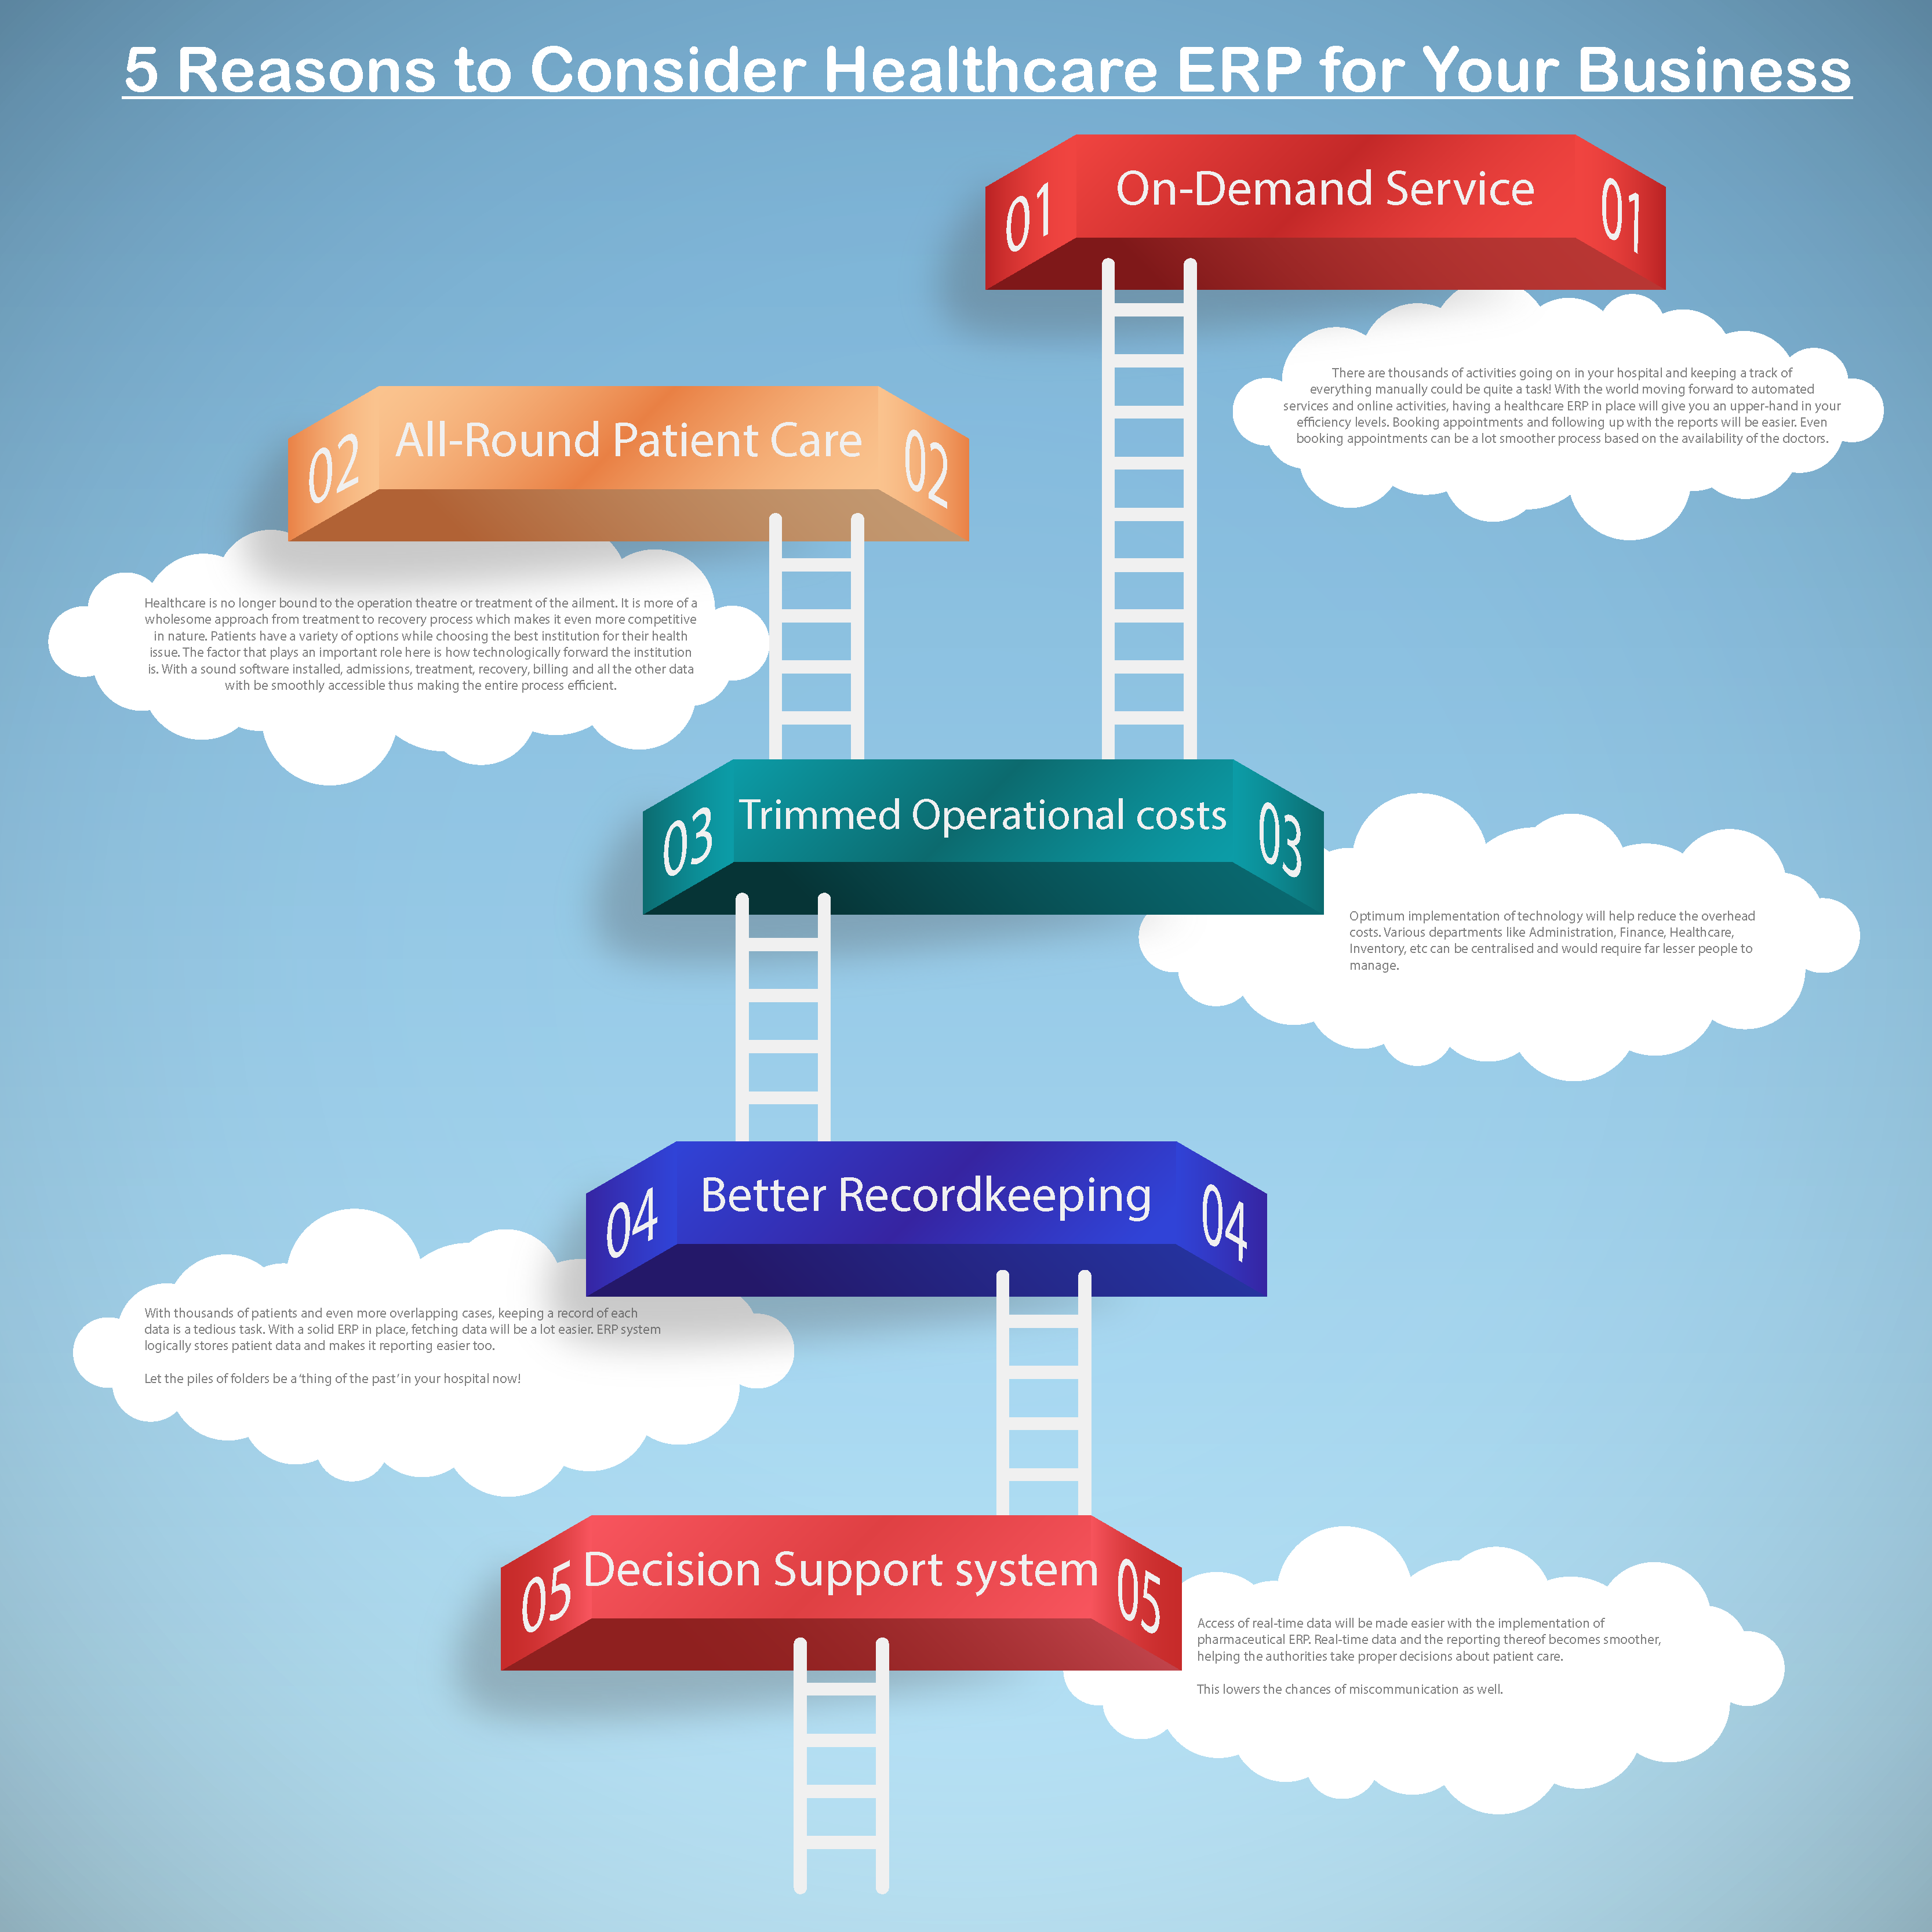 Reasons-to-Consider-Healthcare-ERP-for-Your-Business.png